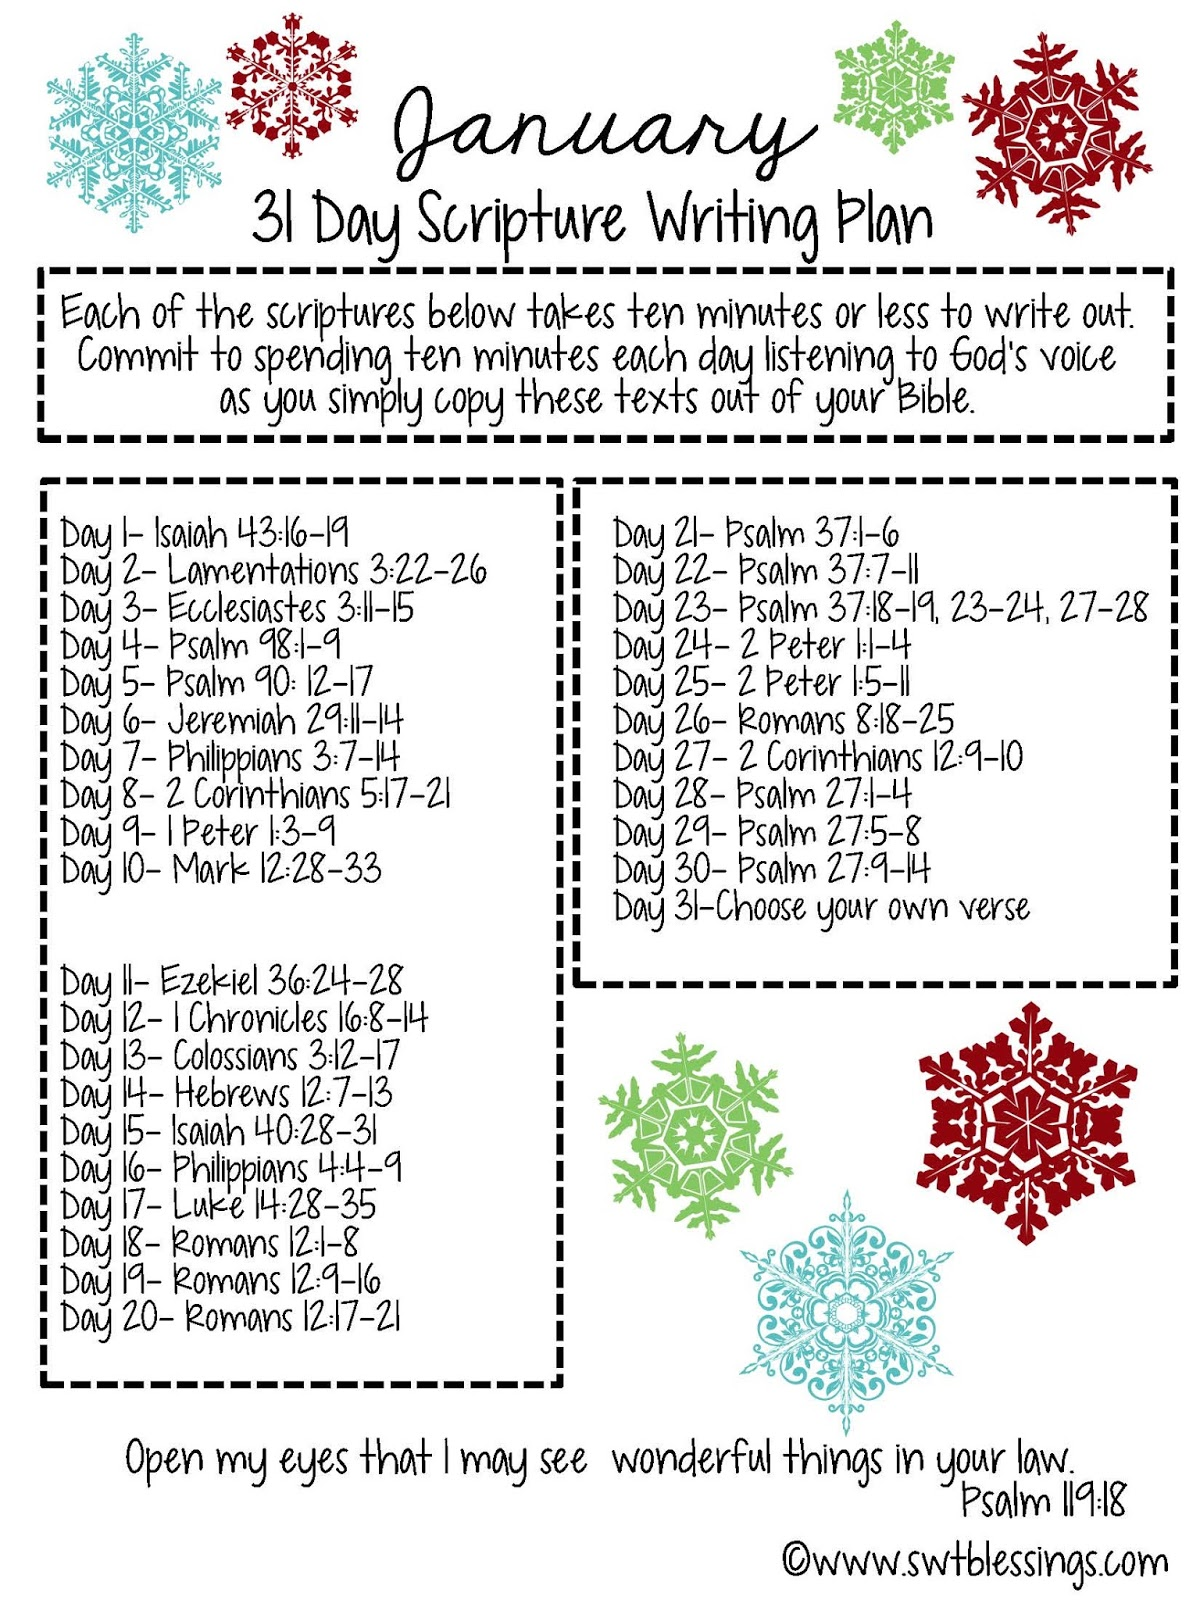 Sweet Blessings: January Scripture Writing Plan: Courage